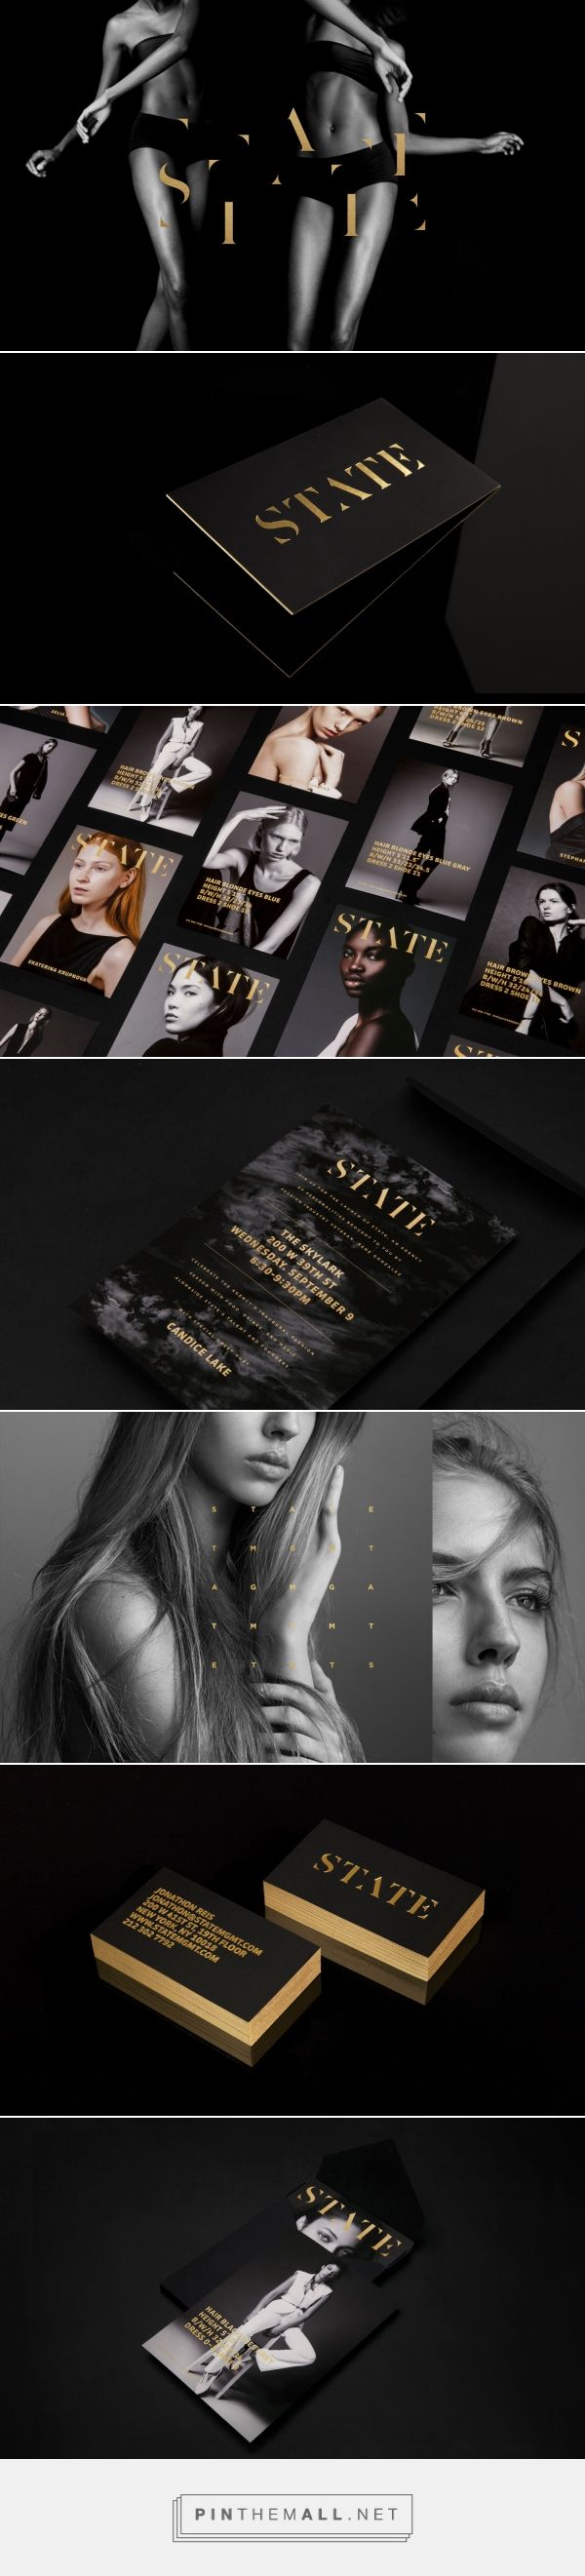 State Modeling Agency Branding by FAREWELL | Fivestar Branding Agency – Design and Branding Agency & Inspiration Gallery